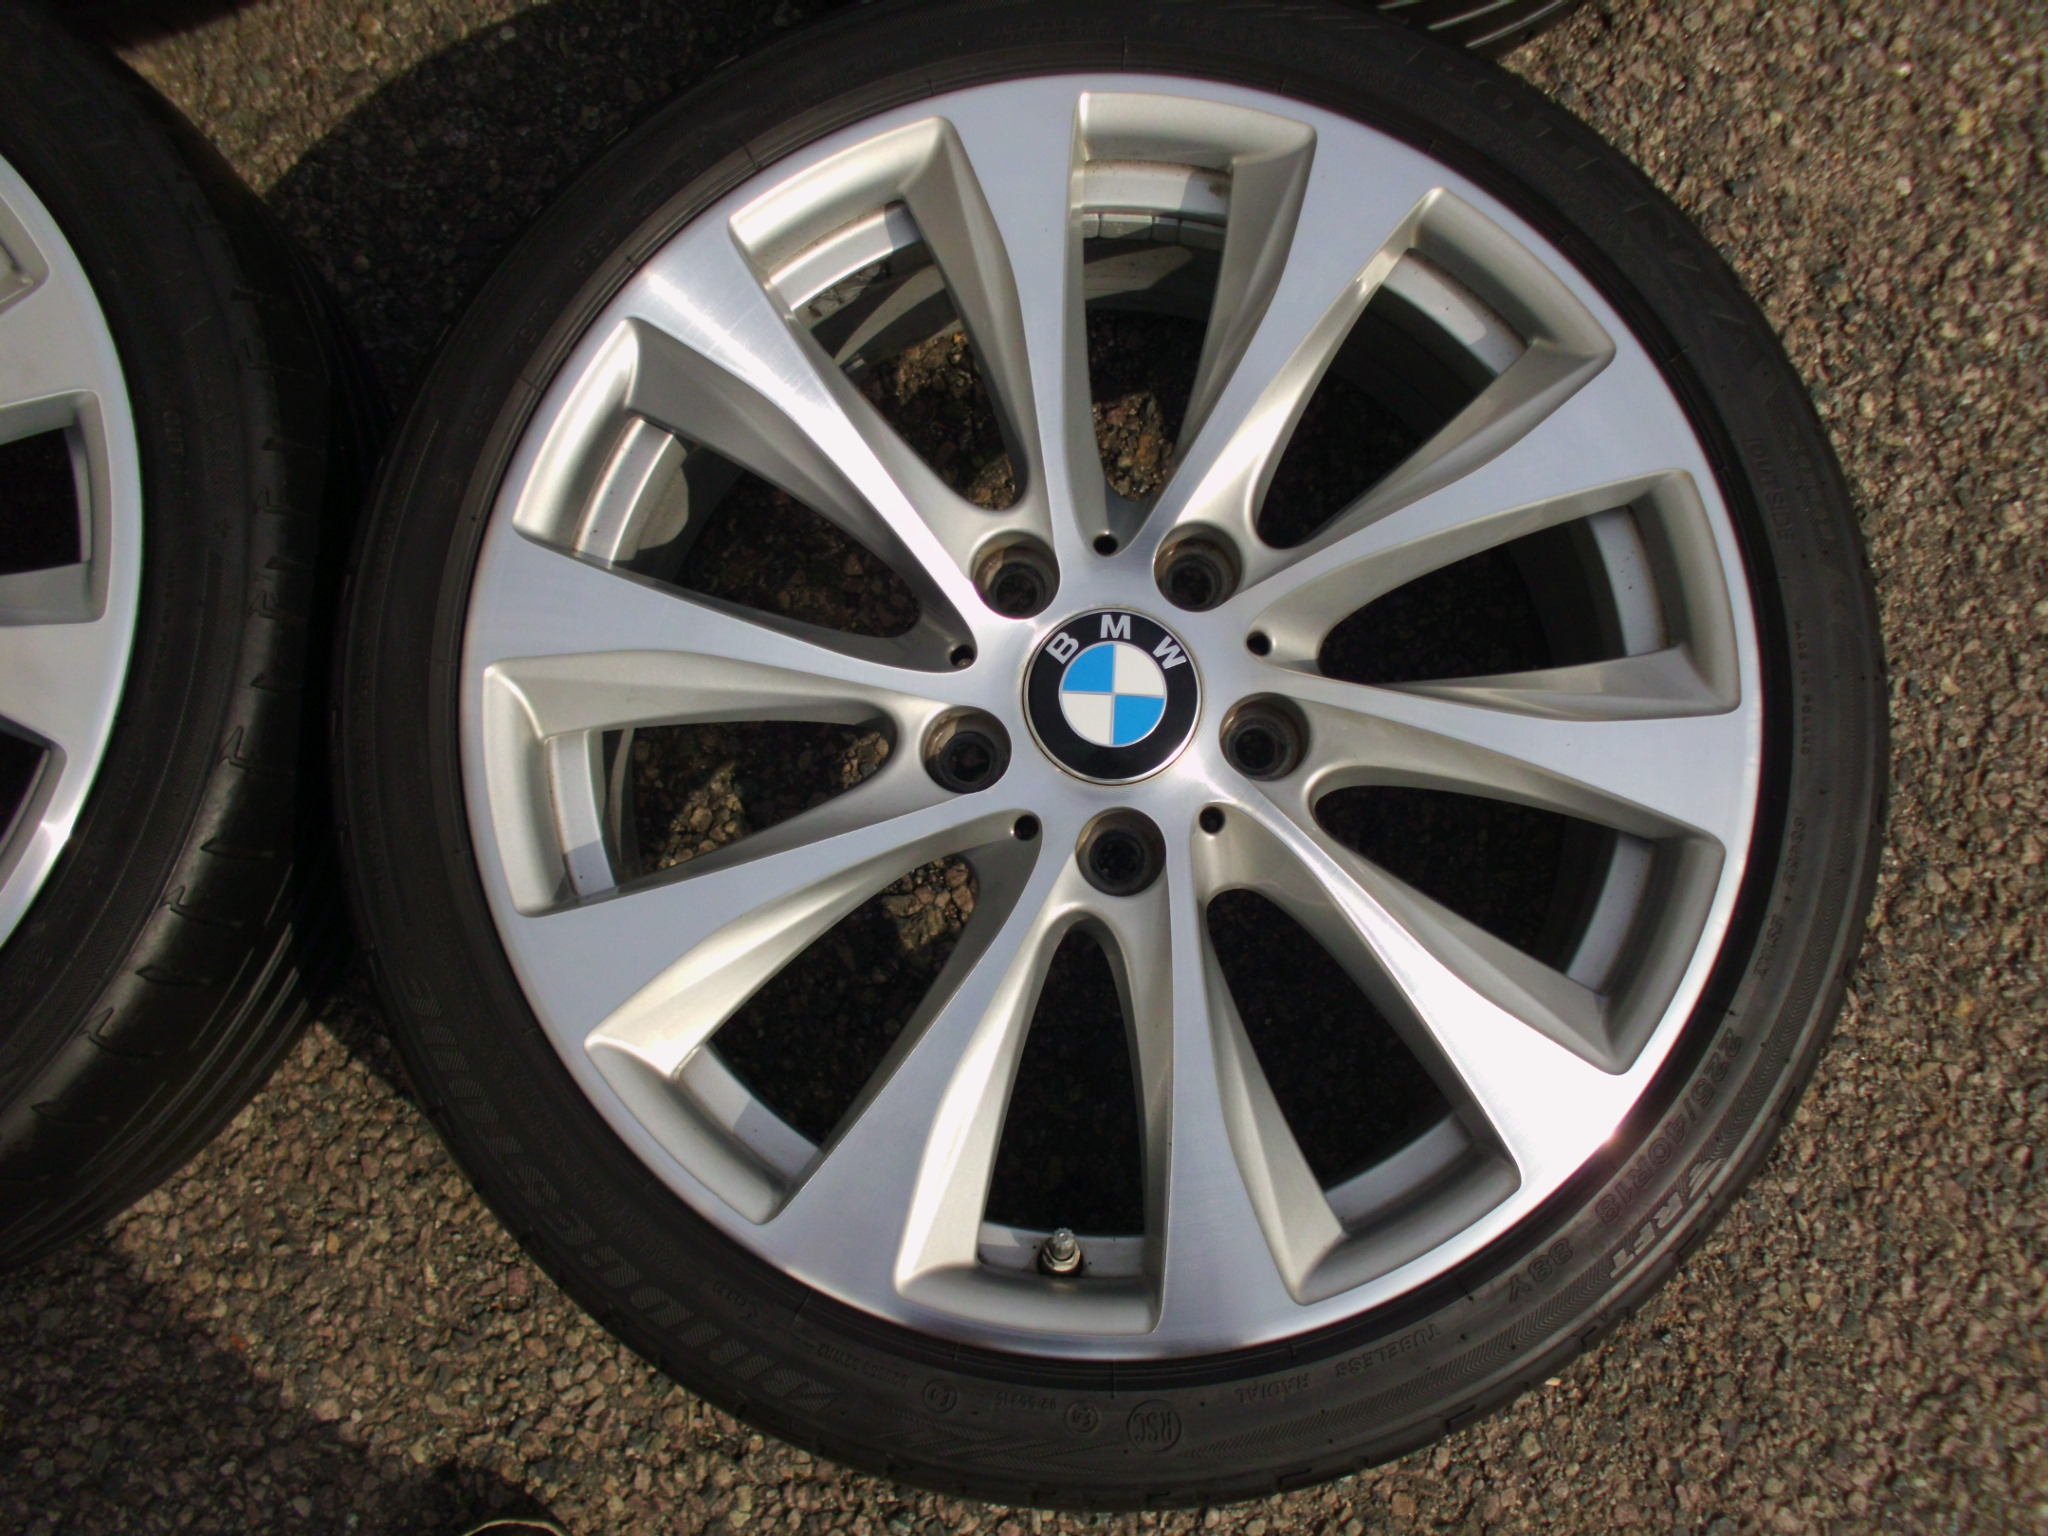 "USED 18"" GENUINE STYLE 387 1 SERIES MULTI SPOKE ALLOY WHEELS,VERY CLEAN, WIDER REAR INC BRIDGESTONE RUNFLATS"